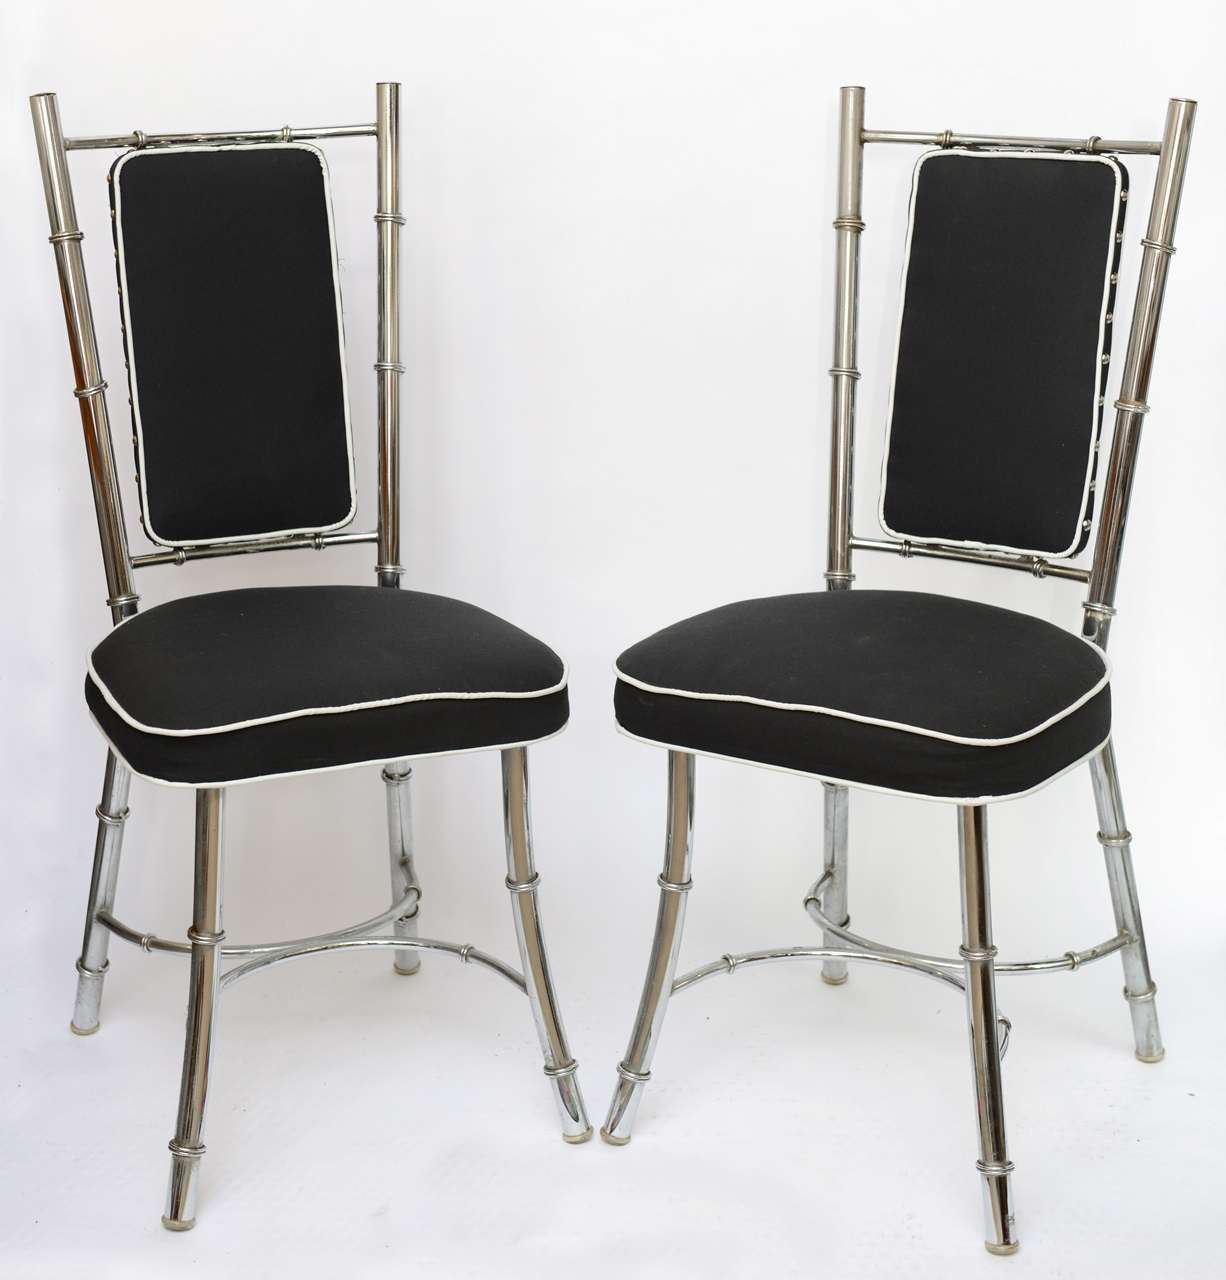 Pair 60 39 s bamboo style chrome side chairs at 1stdibs for Furniture 60s style